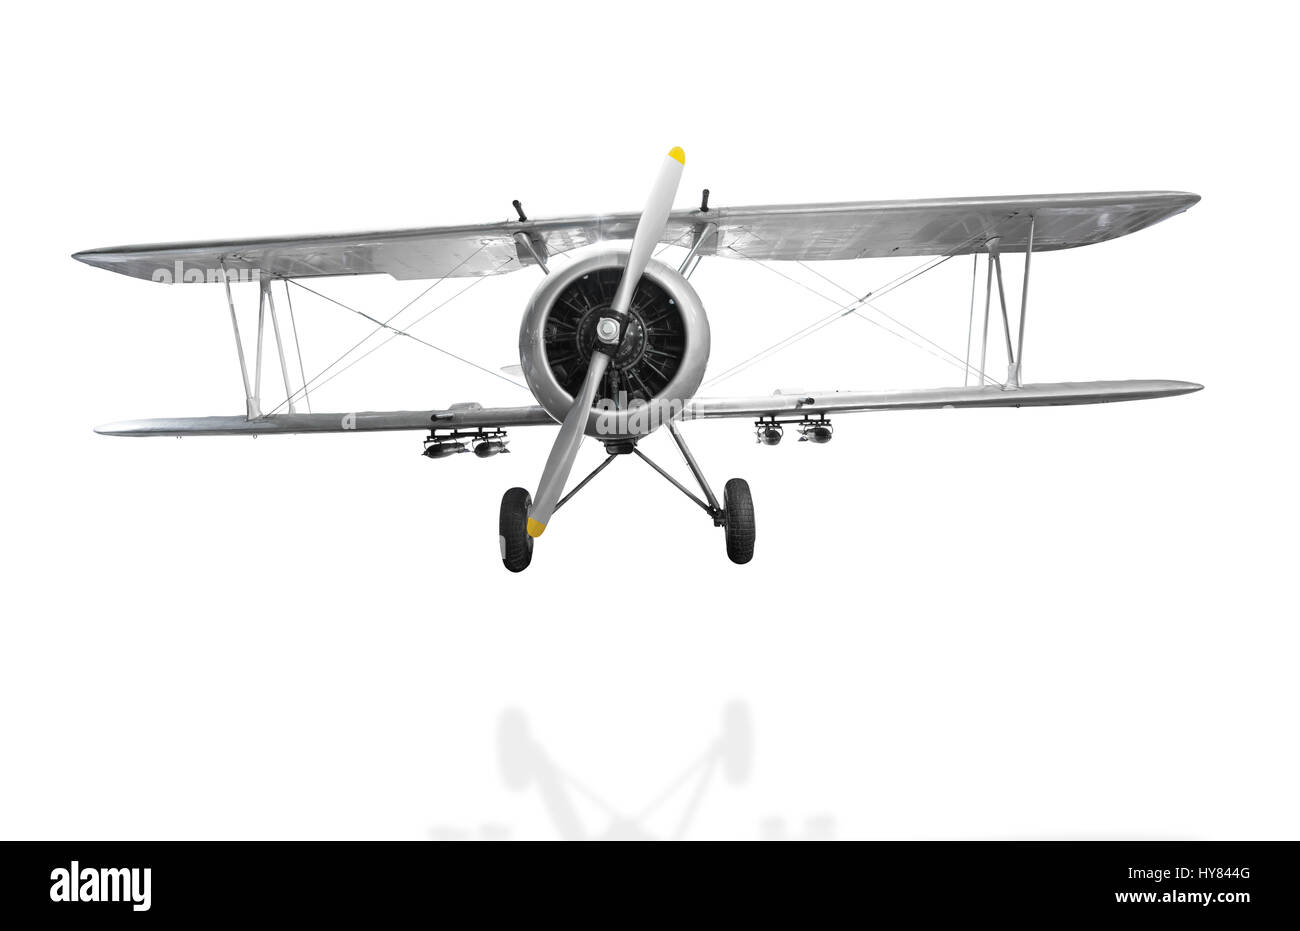 Old fighter plane isolated on white background with clipping path - Stock Image